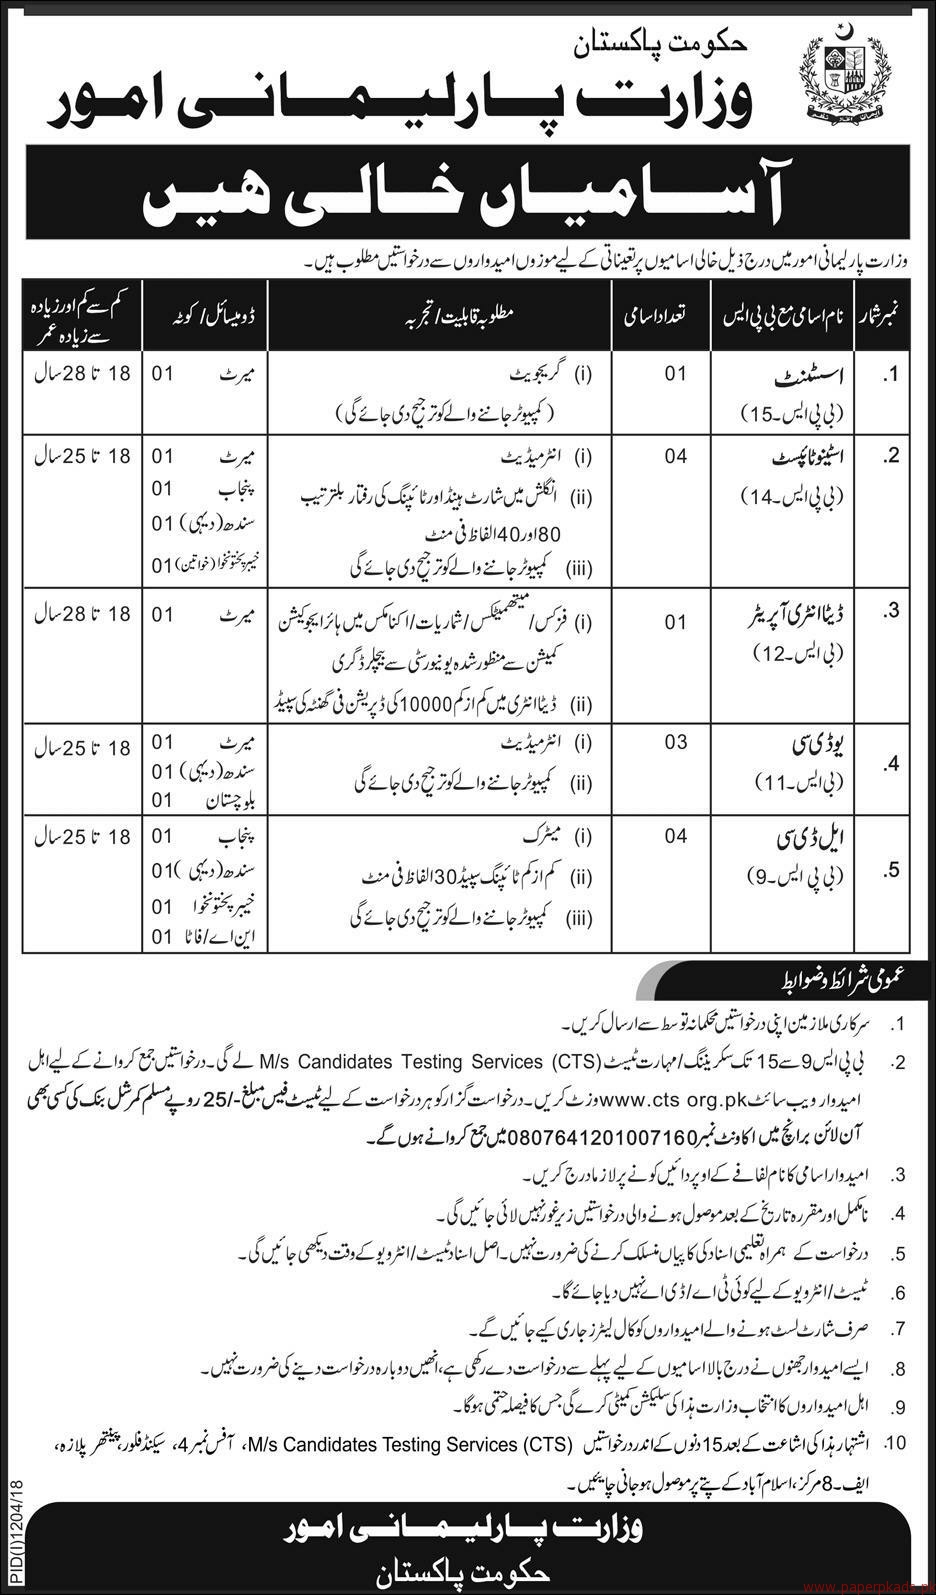 Government of Pakistan - Ministry of Parlimentary Affairs Jobs 2018 Latest-2